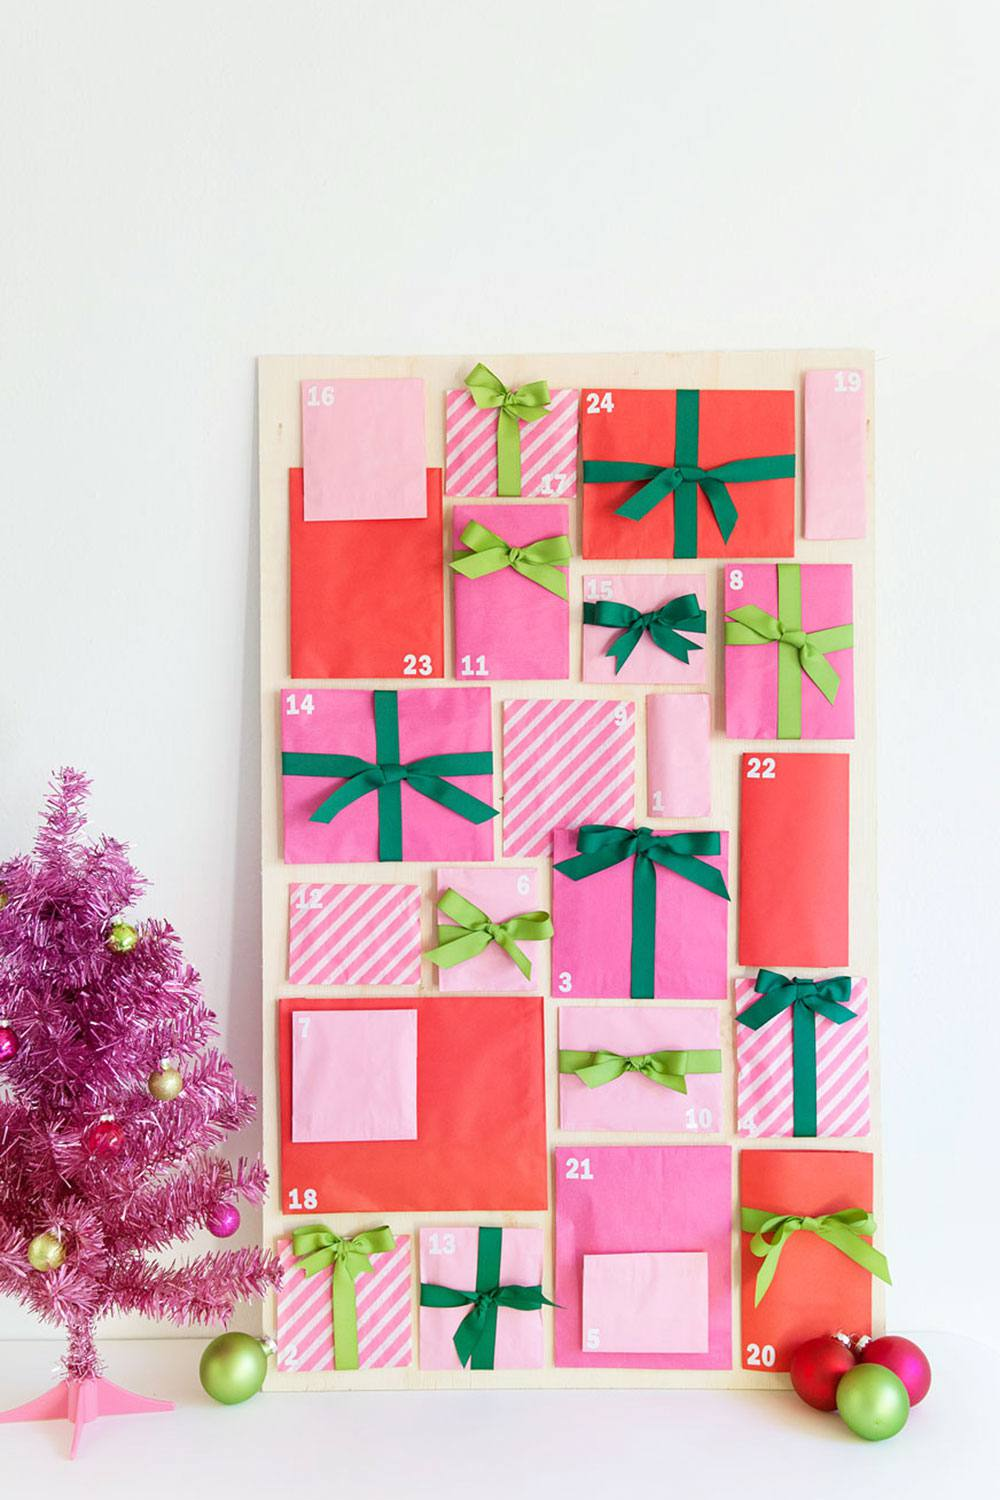 Diy Advent Calendar For Adults : Diy advent calendars for adults